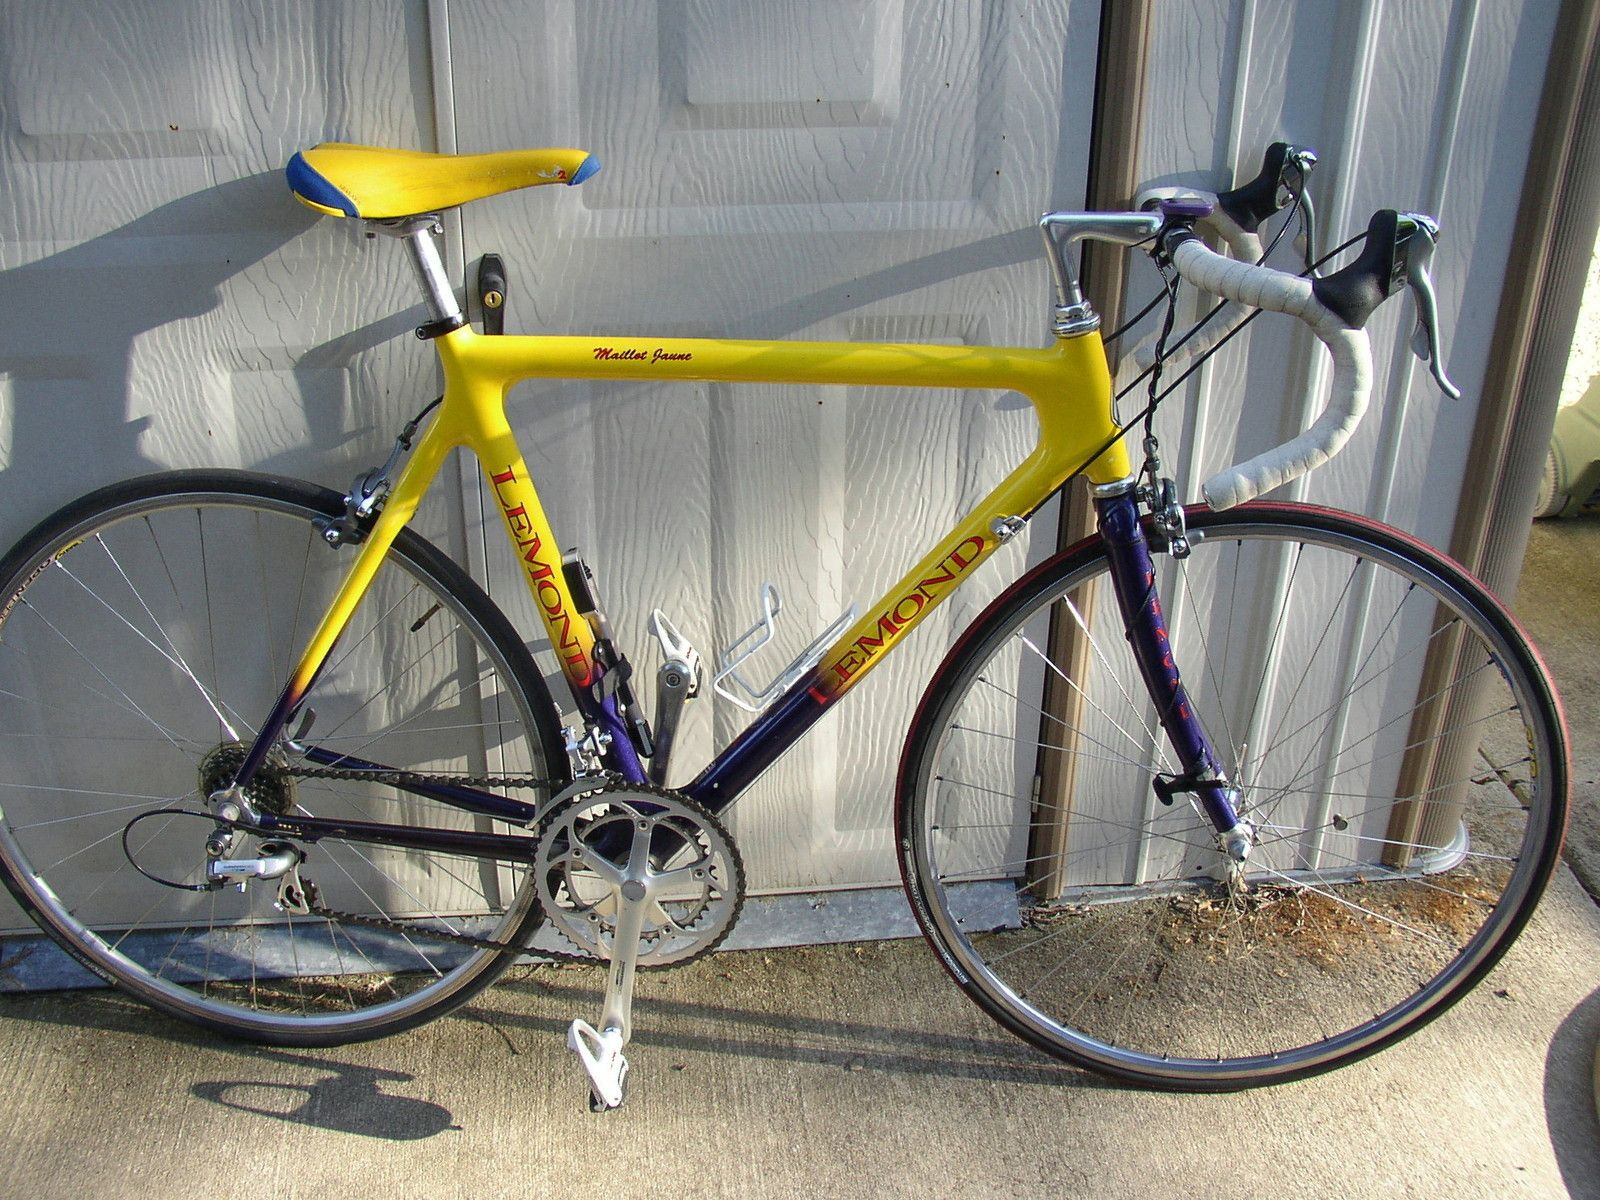 My first real road racer, a Lemond carbon frame with Dura Ace. That ...